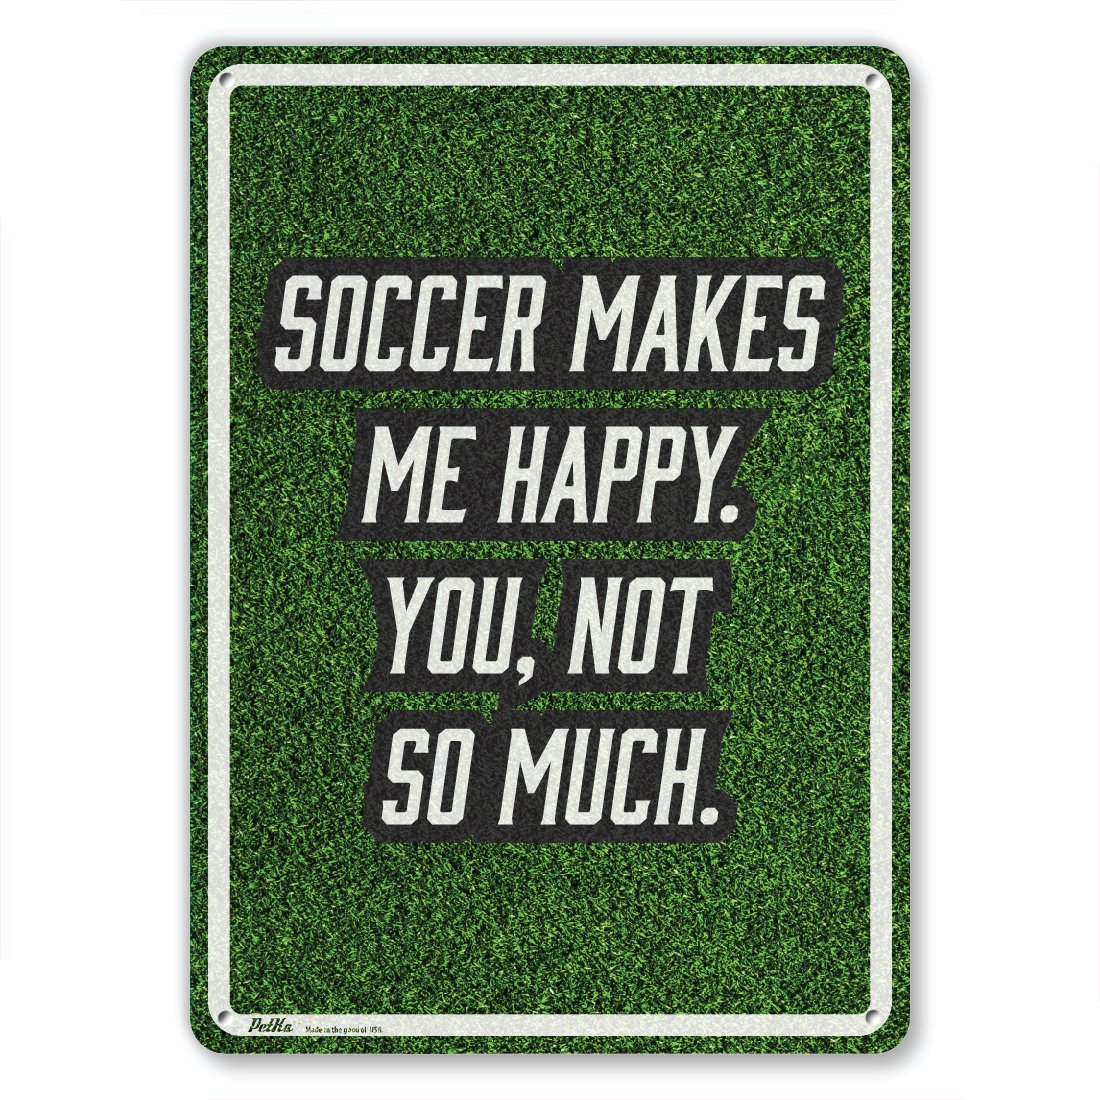 PetKa Signs and Graphics PKSC-0113-NA/_7x10Soccer makes me happy You White//Black Text on Soccer Field Background not so much Aluminum Sign 7 x 10